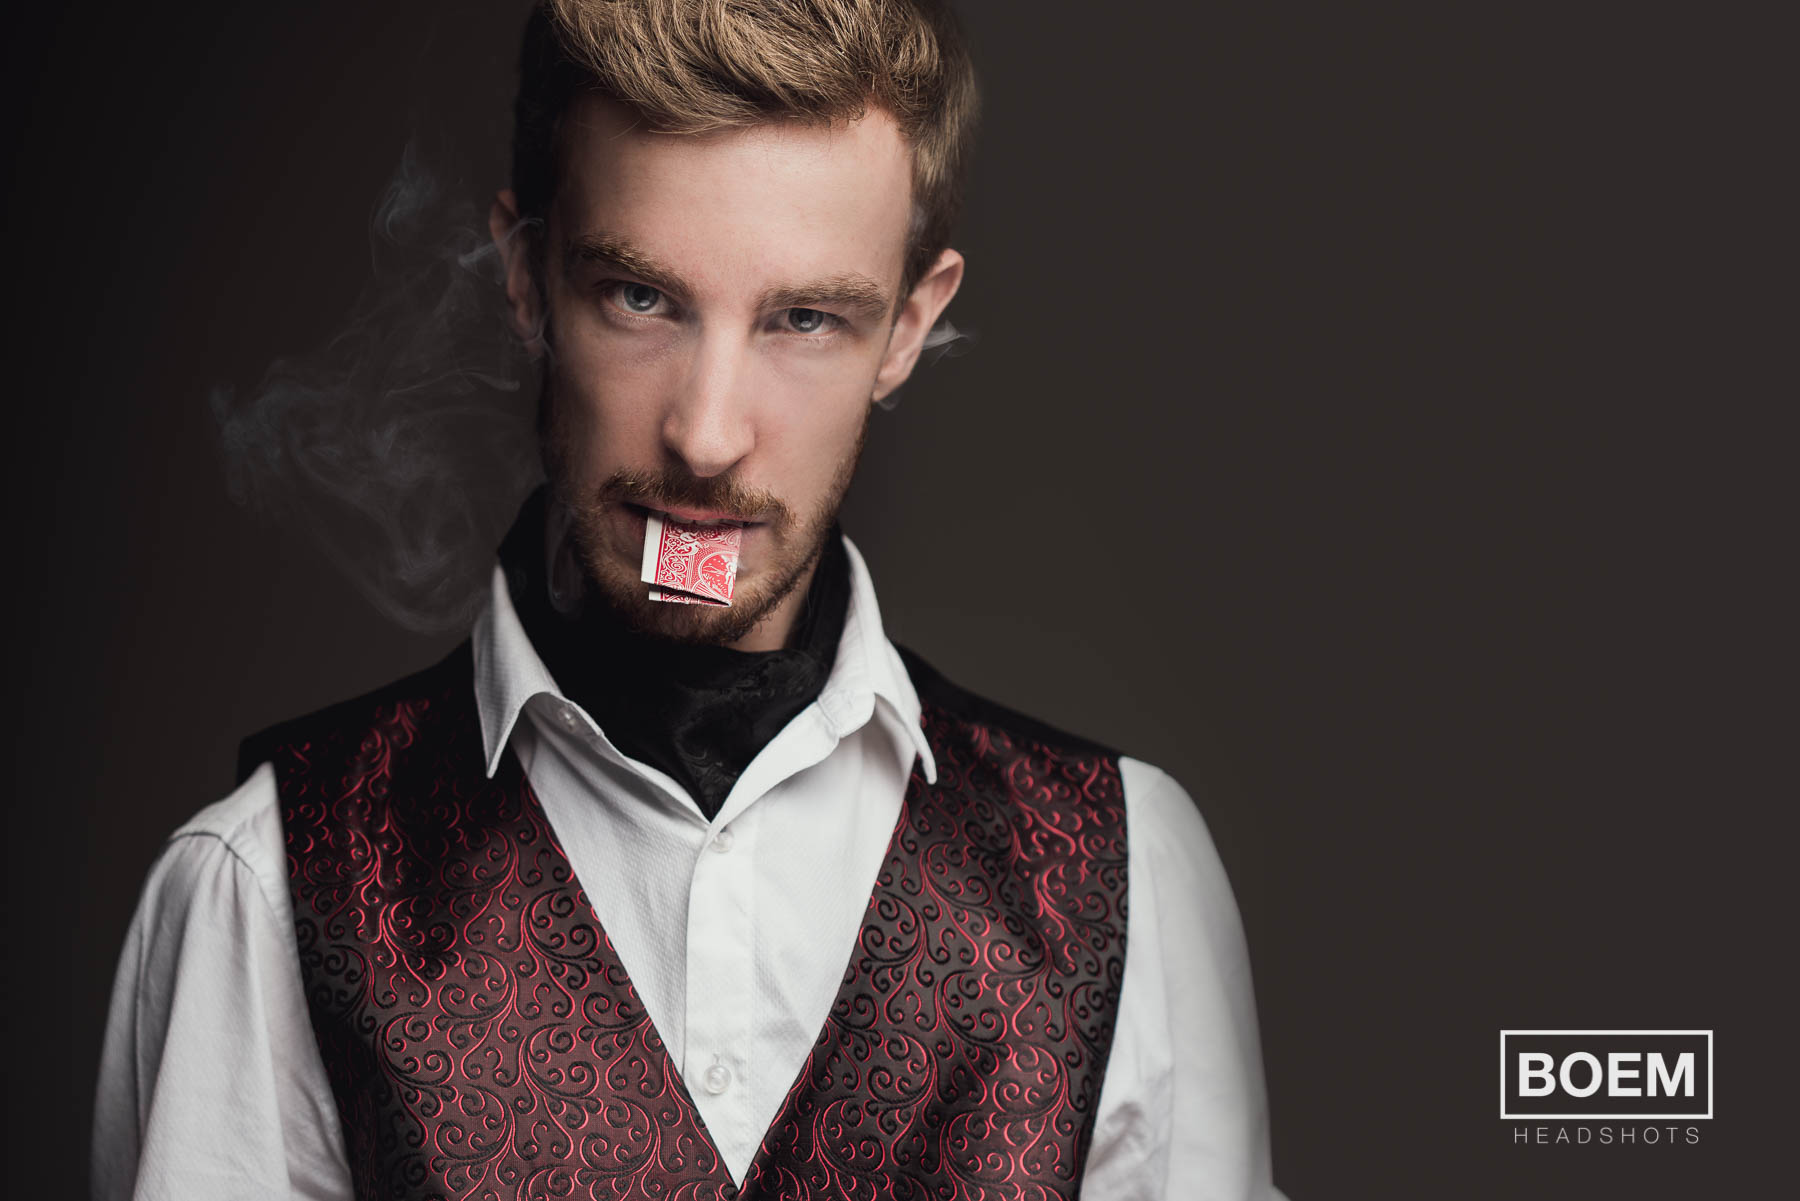 Jason is an awesome magician and performer here in adelaide who needed a few more styled images for his posters and marketing materials. This is actually a crop from a larger image and i just love the intimate feel of this headshot.